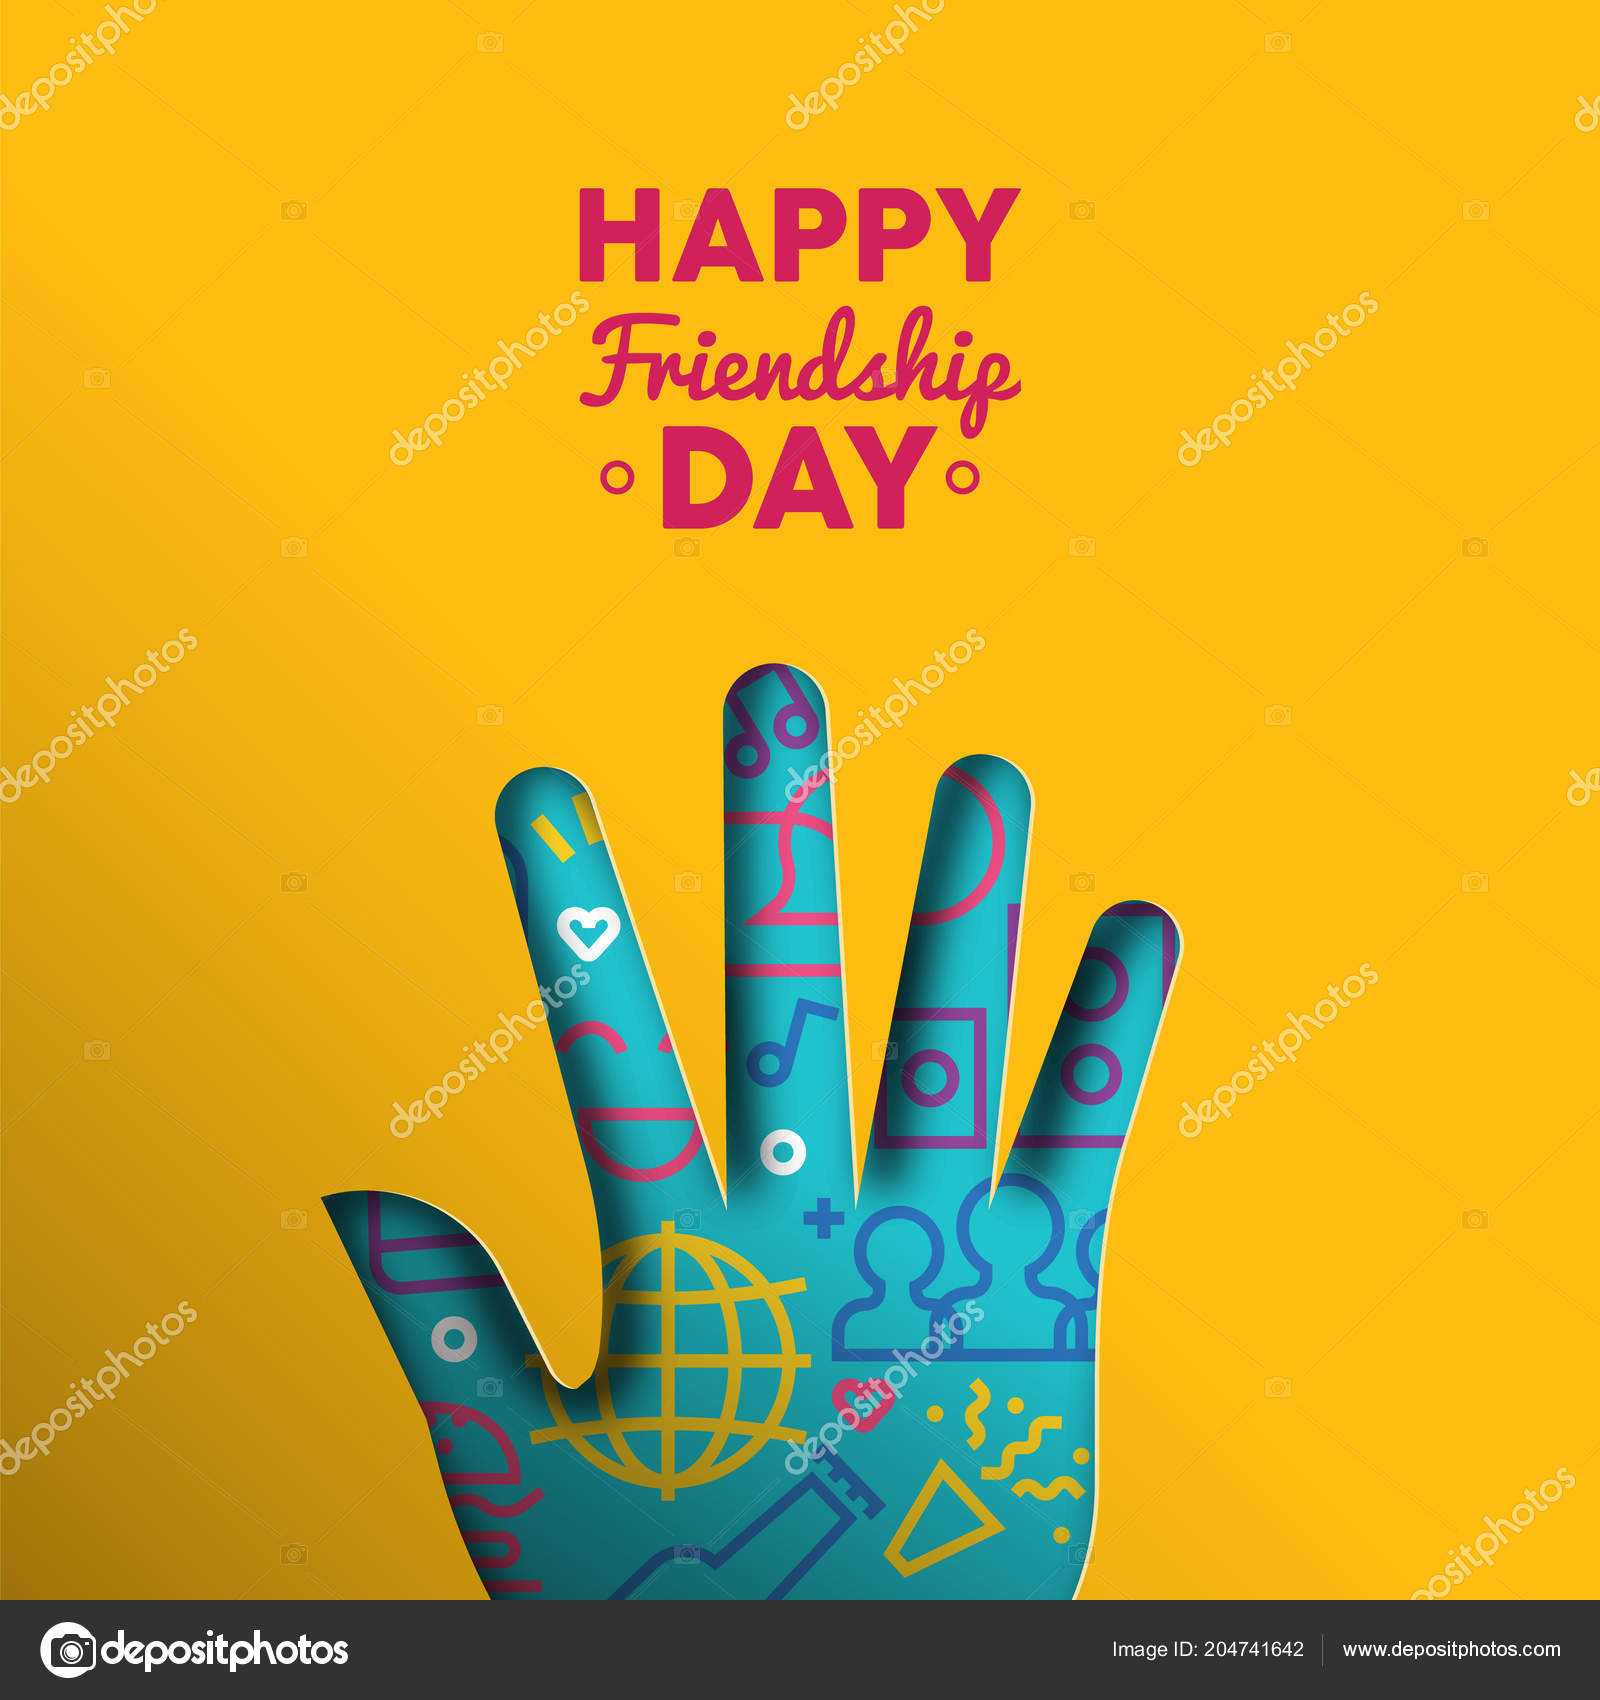 Happy Friendship Day Greeting Card Illustration Paper Cut Hand Shape